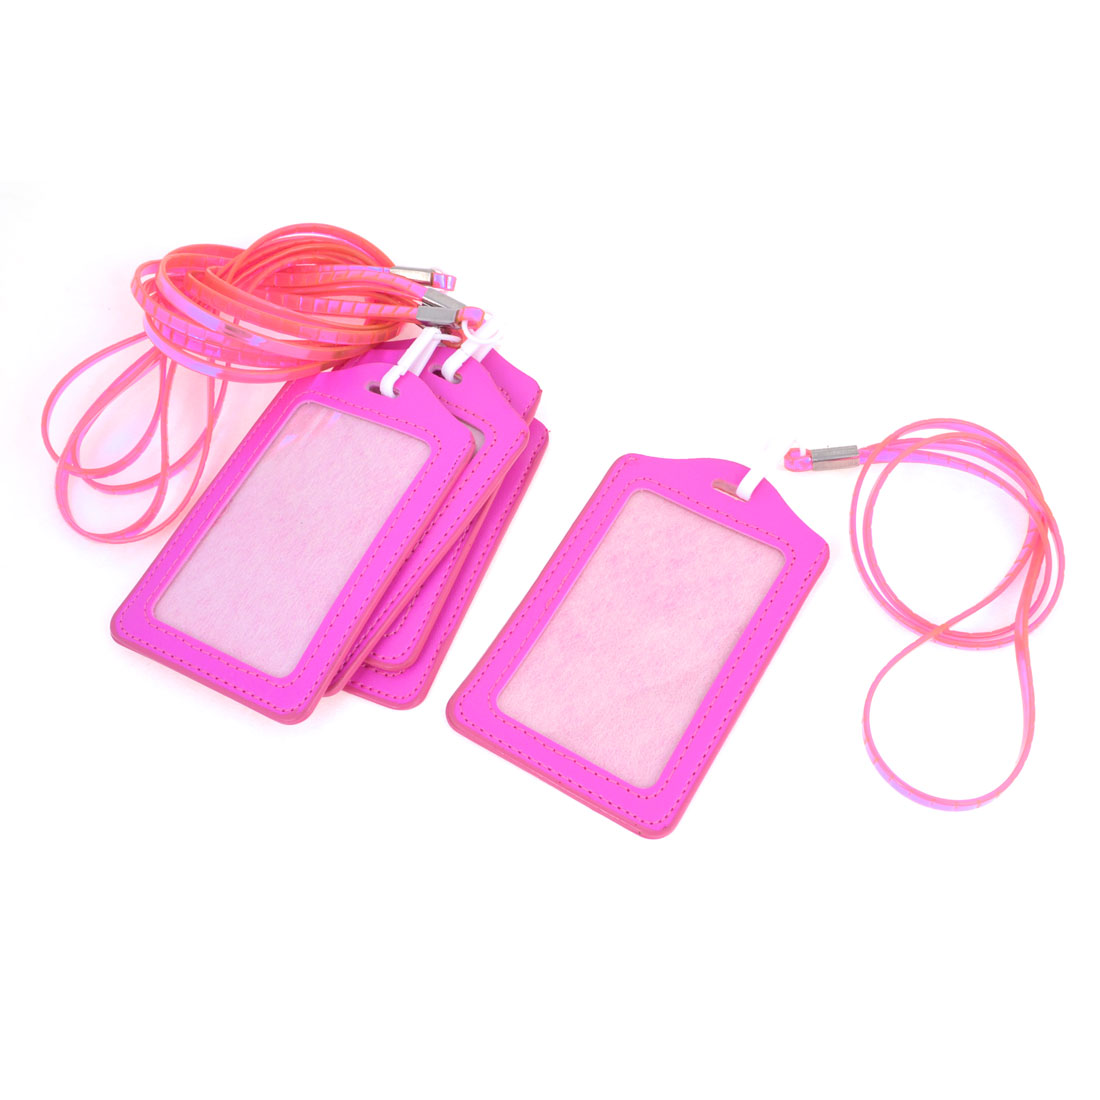 5 Pcs Office Fuchsia Vertical Name Card ID Badge Holder w Soft Plastic Lanyard